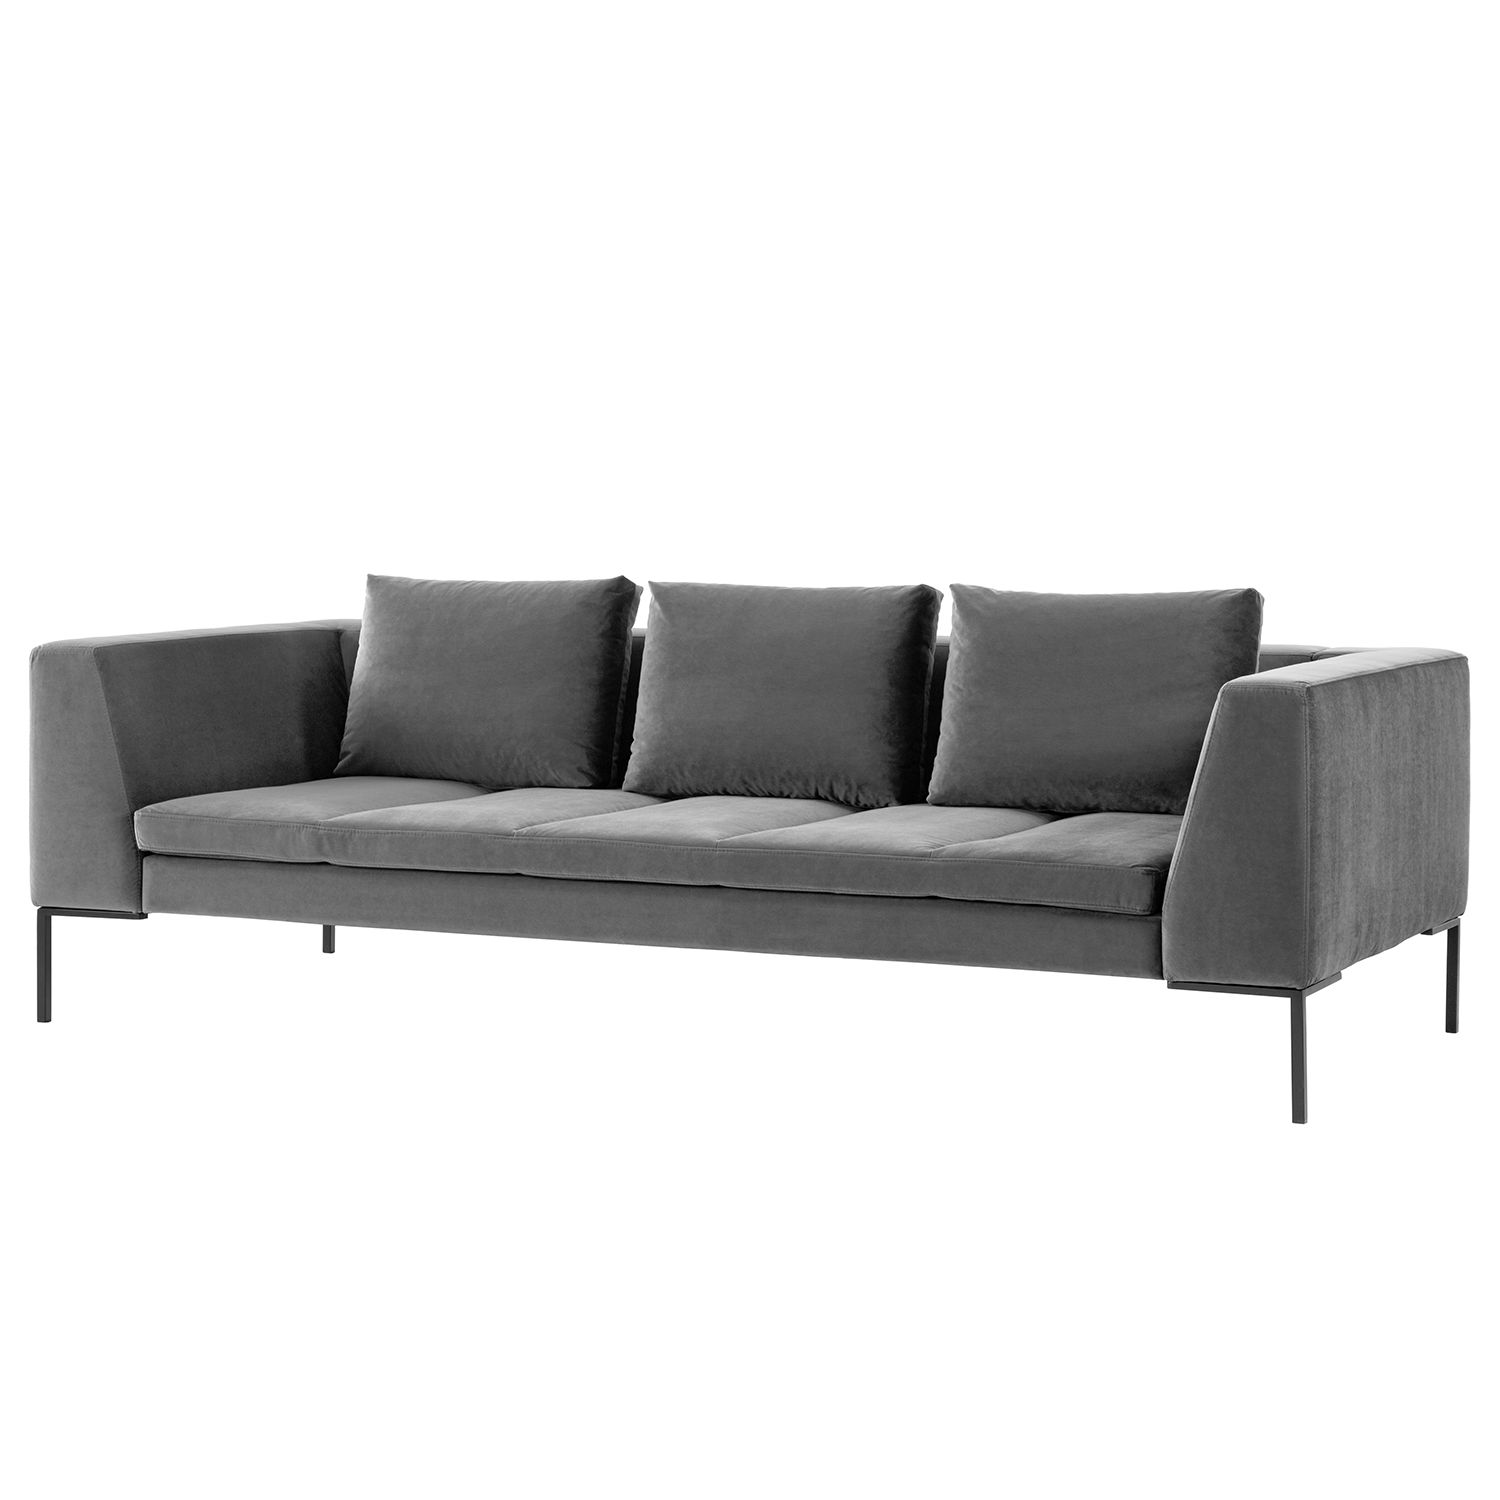 sofa madison 3 sitzer samt stoff shyla grau studio copenhagen online kaufen bei woonio. Black Bedroom Furniture Sets. Home Design Ideas